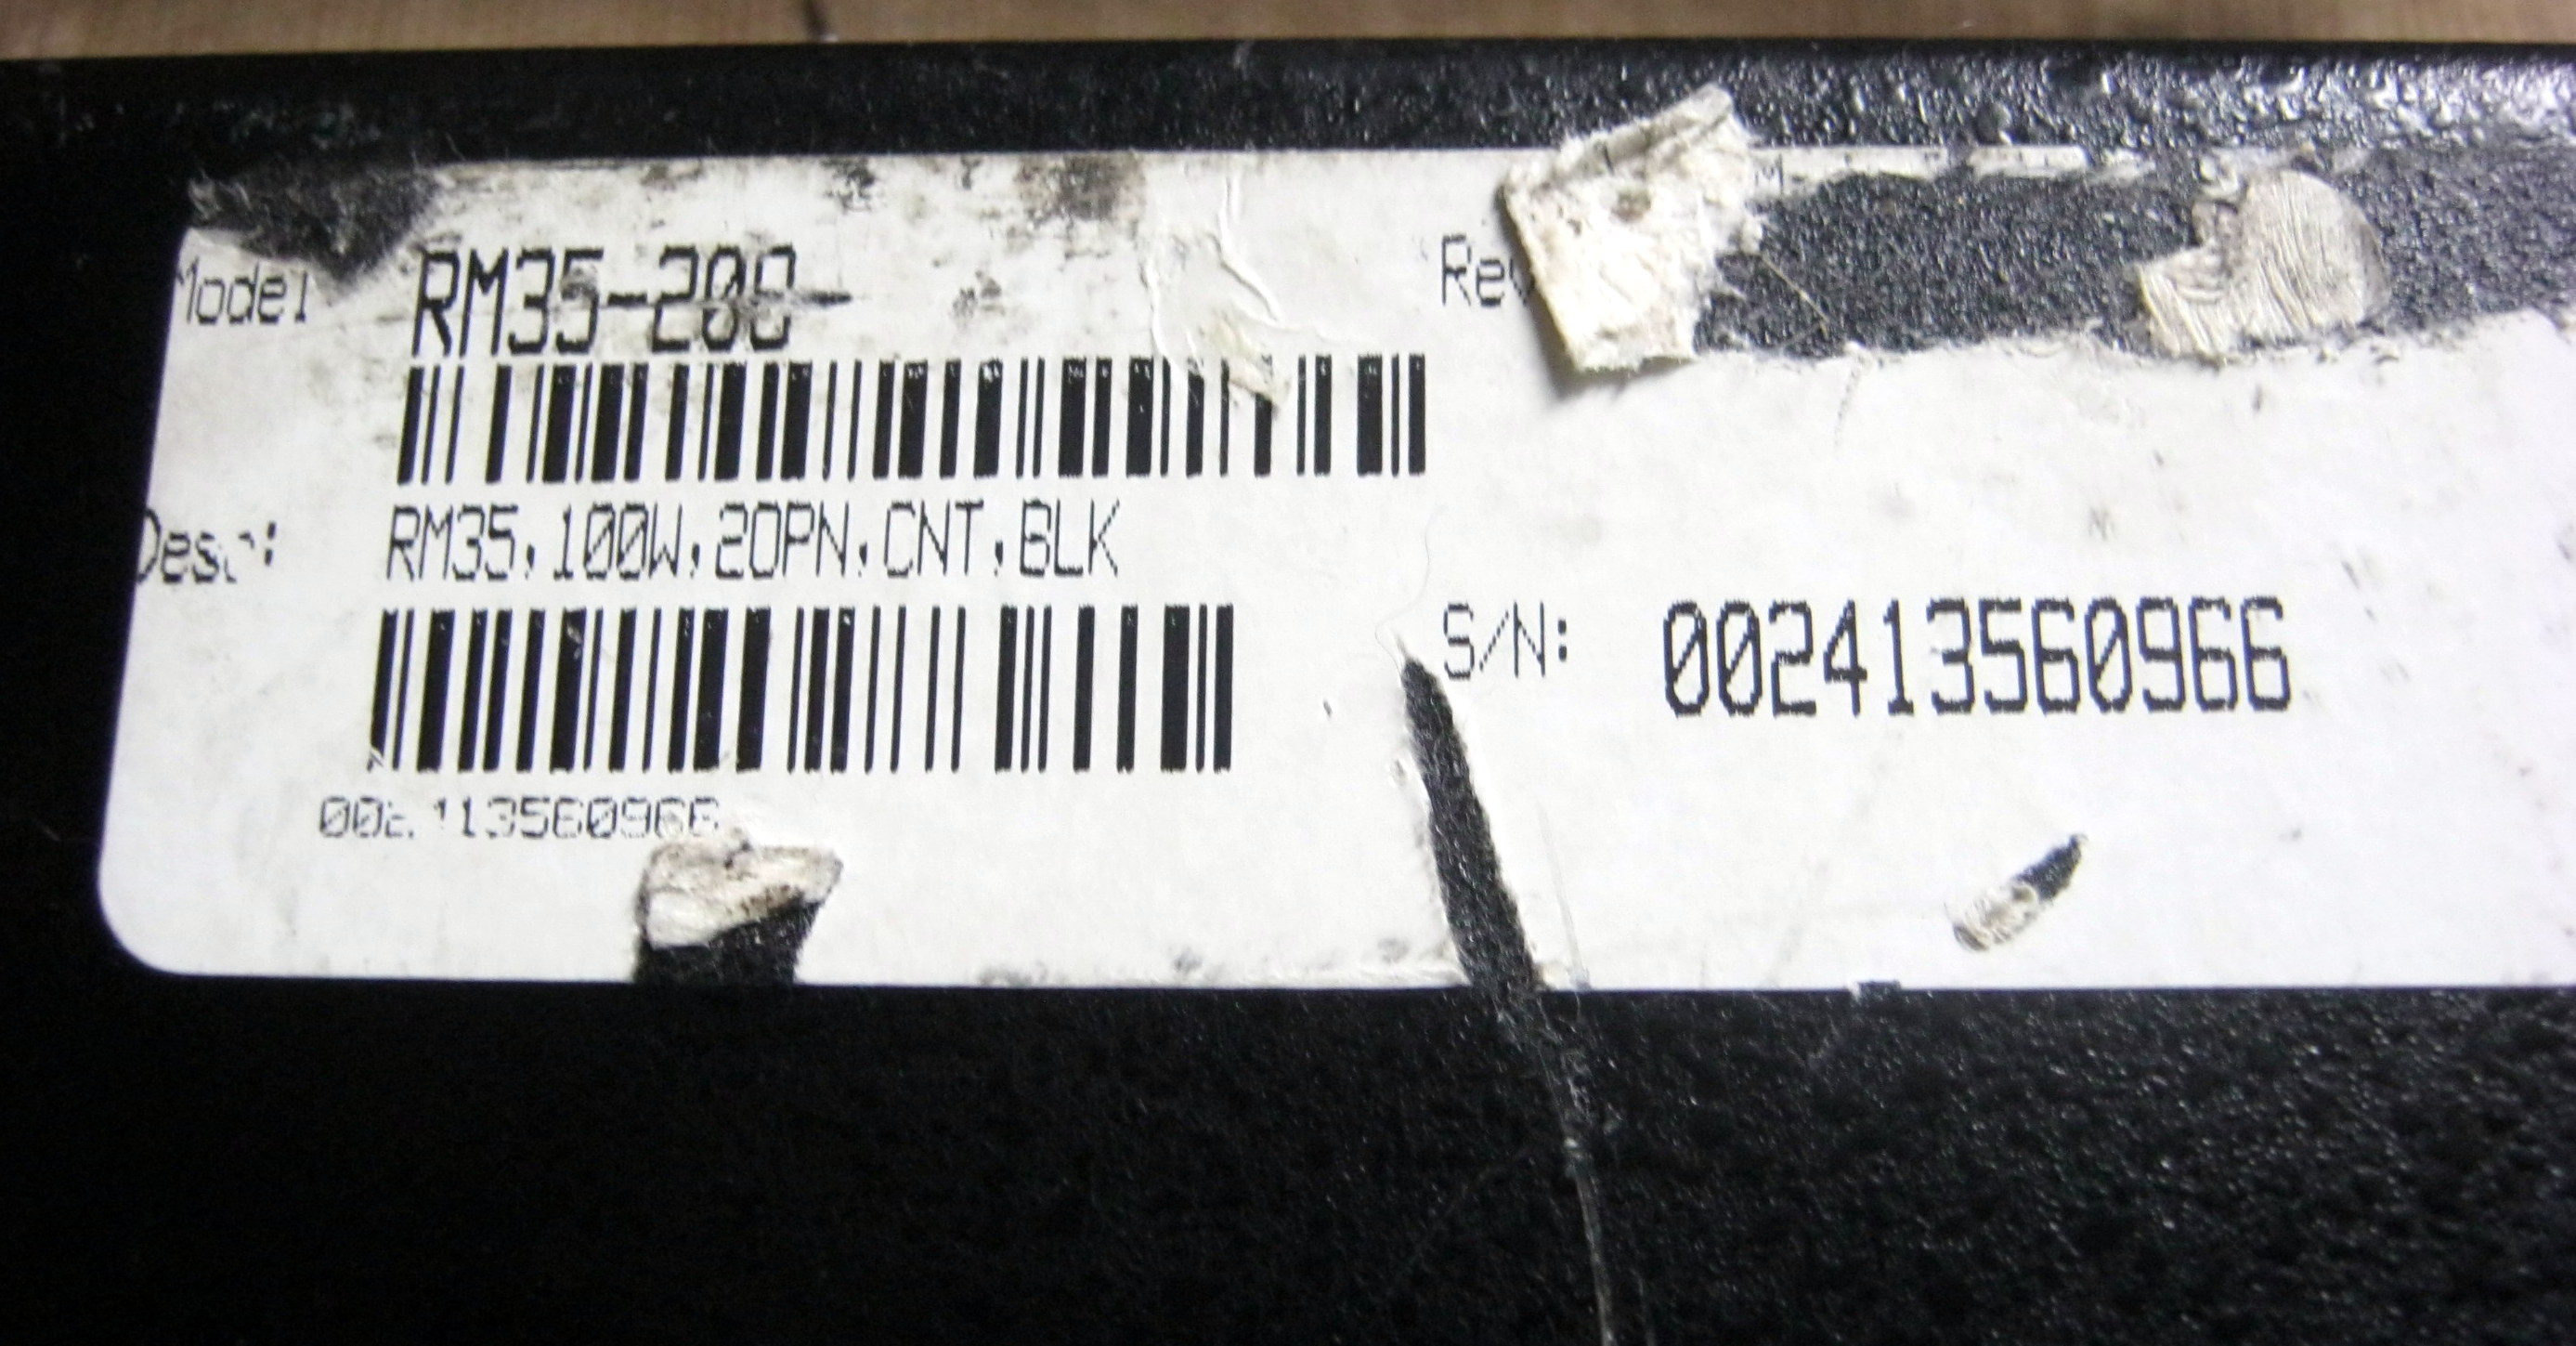 RM35 label and serial number